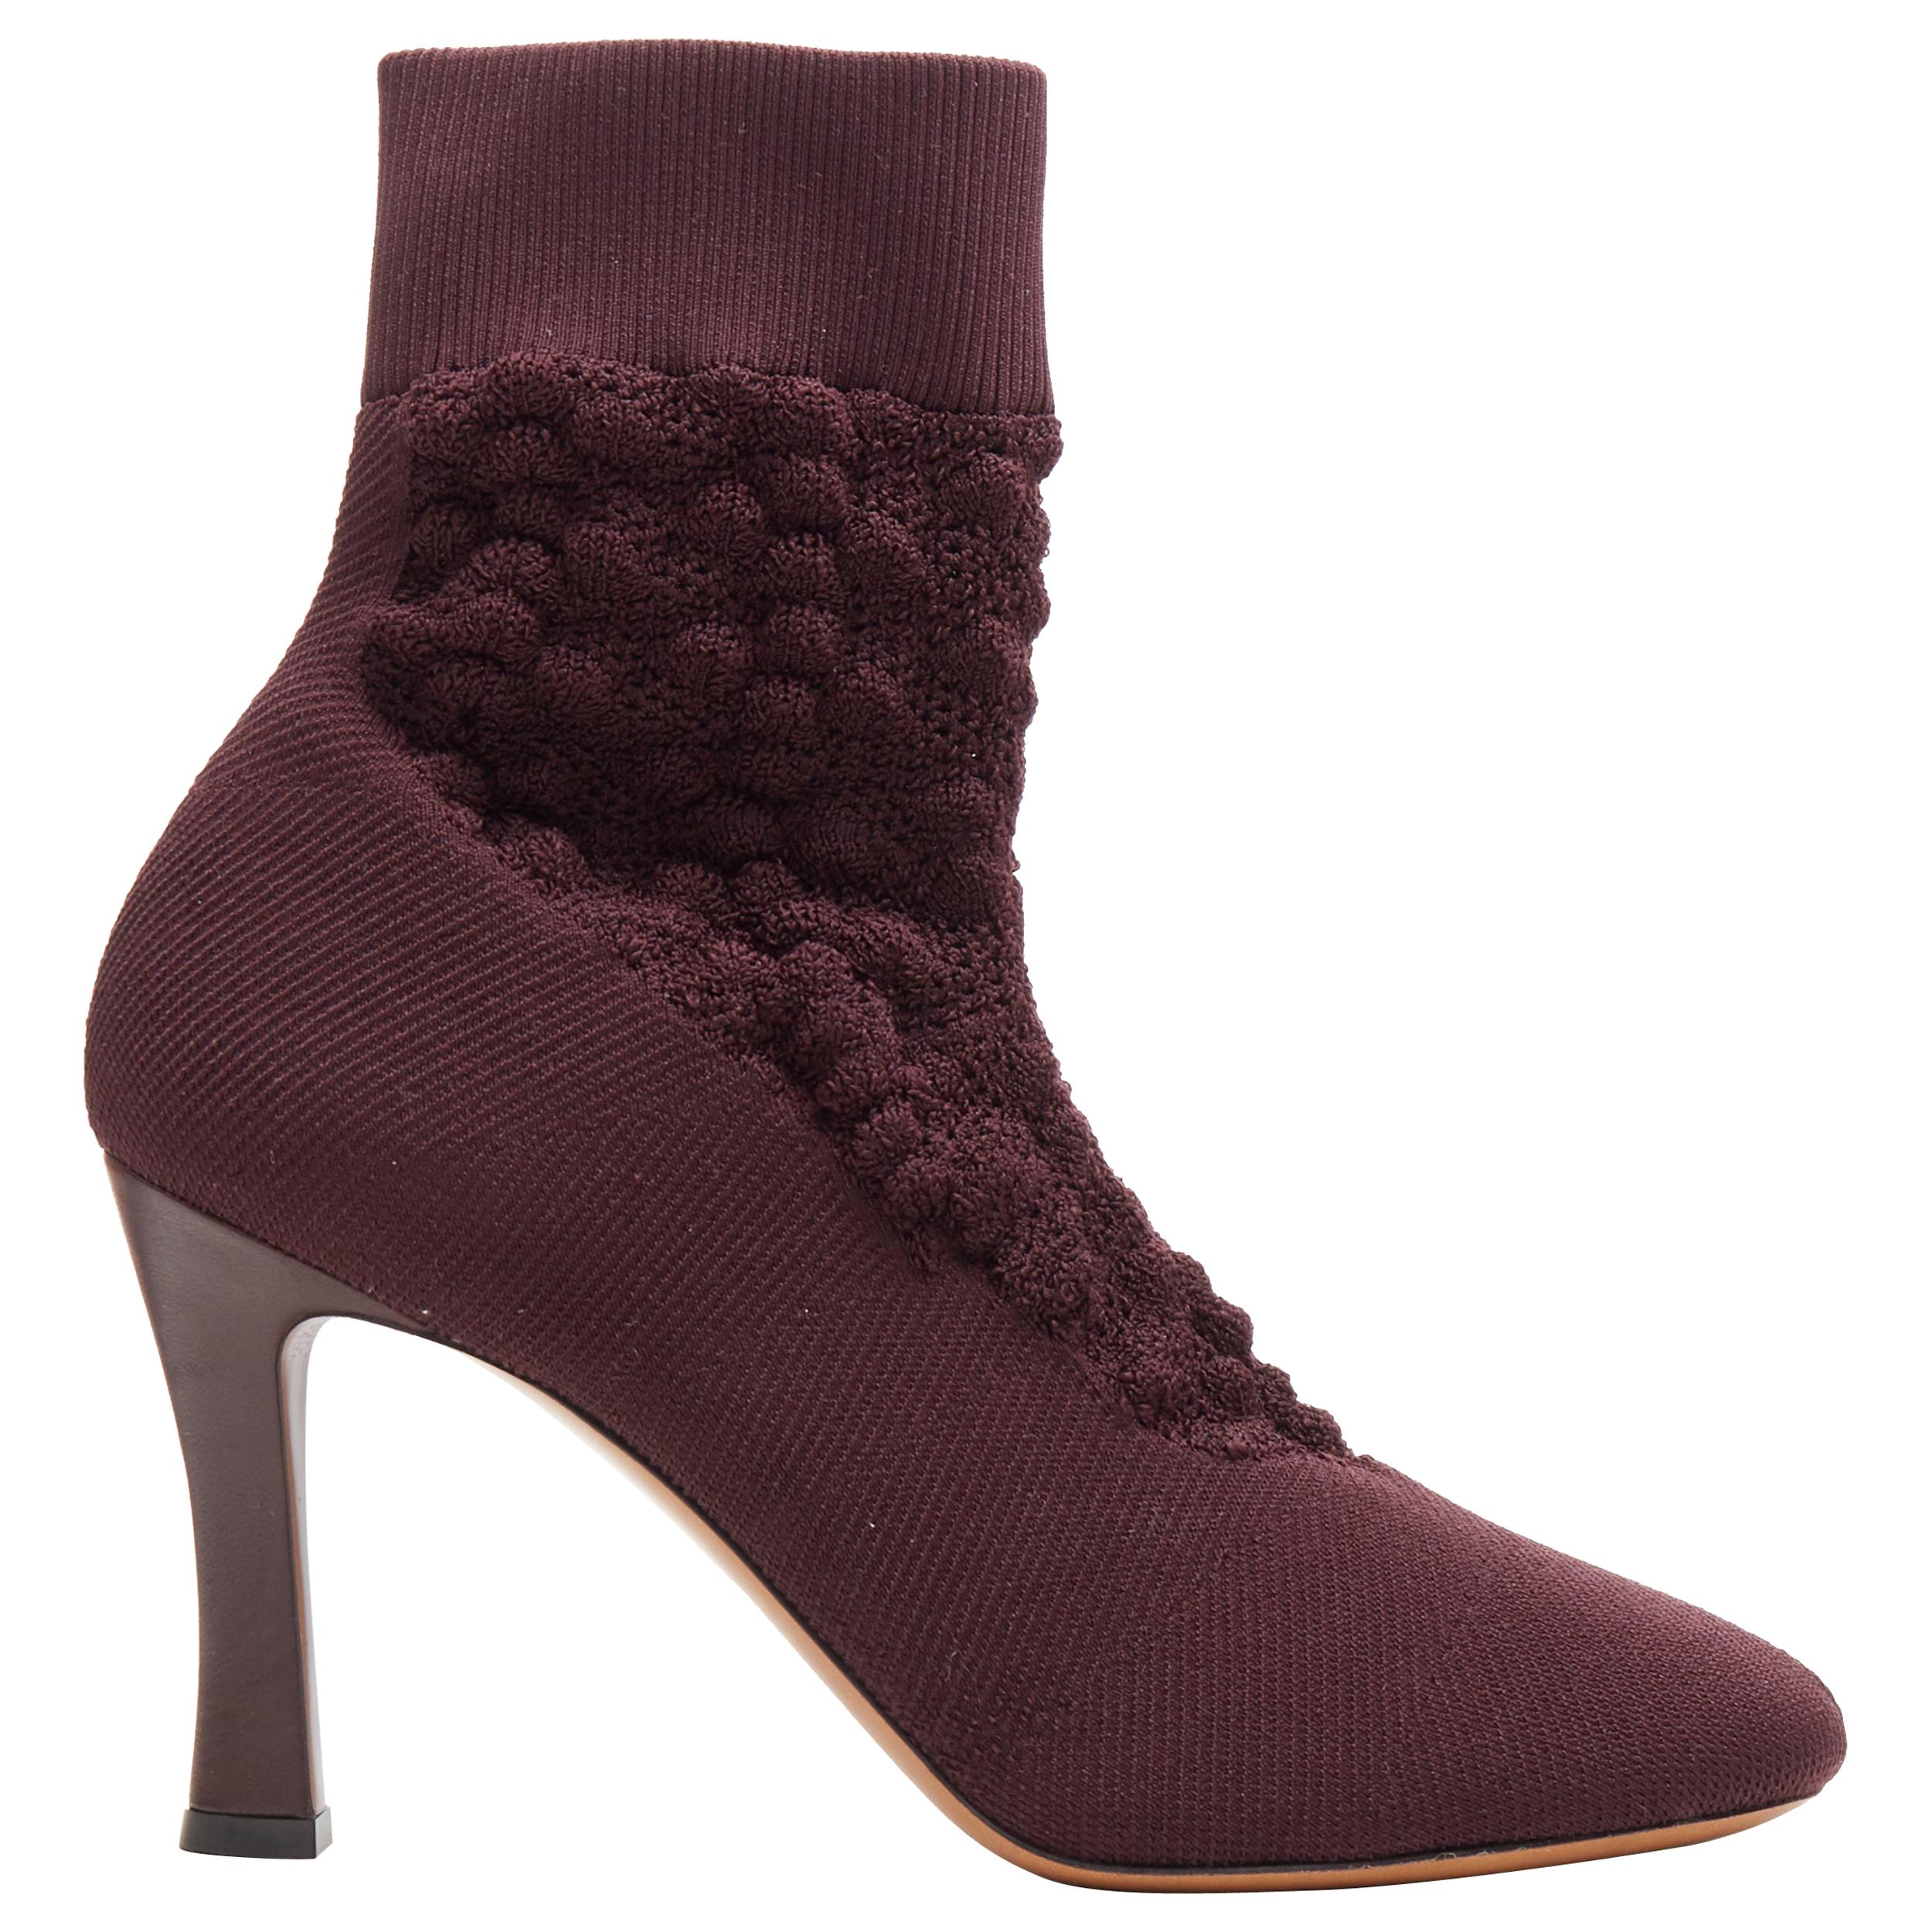 new OLD CELINE Glove Bootie burgundy textured sock knit square toe boots EU40